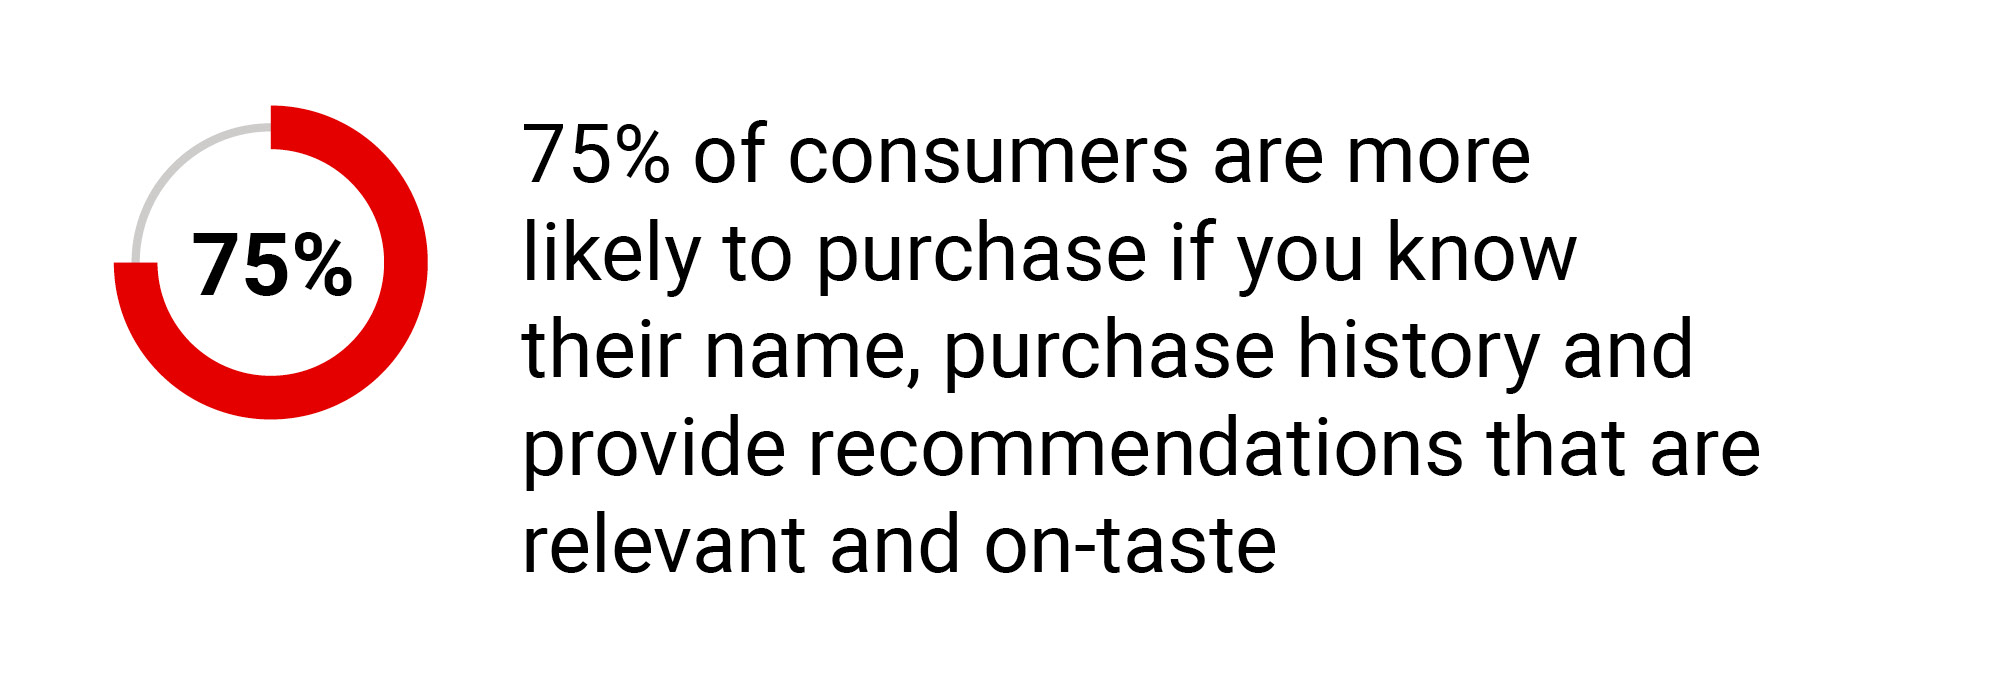 75% of consumers are more likely to purchase if you know their name, purchase history and provide recommendations that are relevant and on-taste